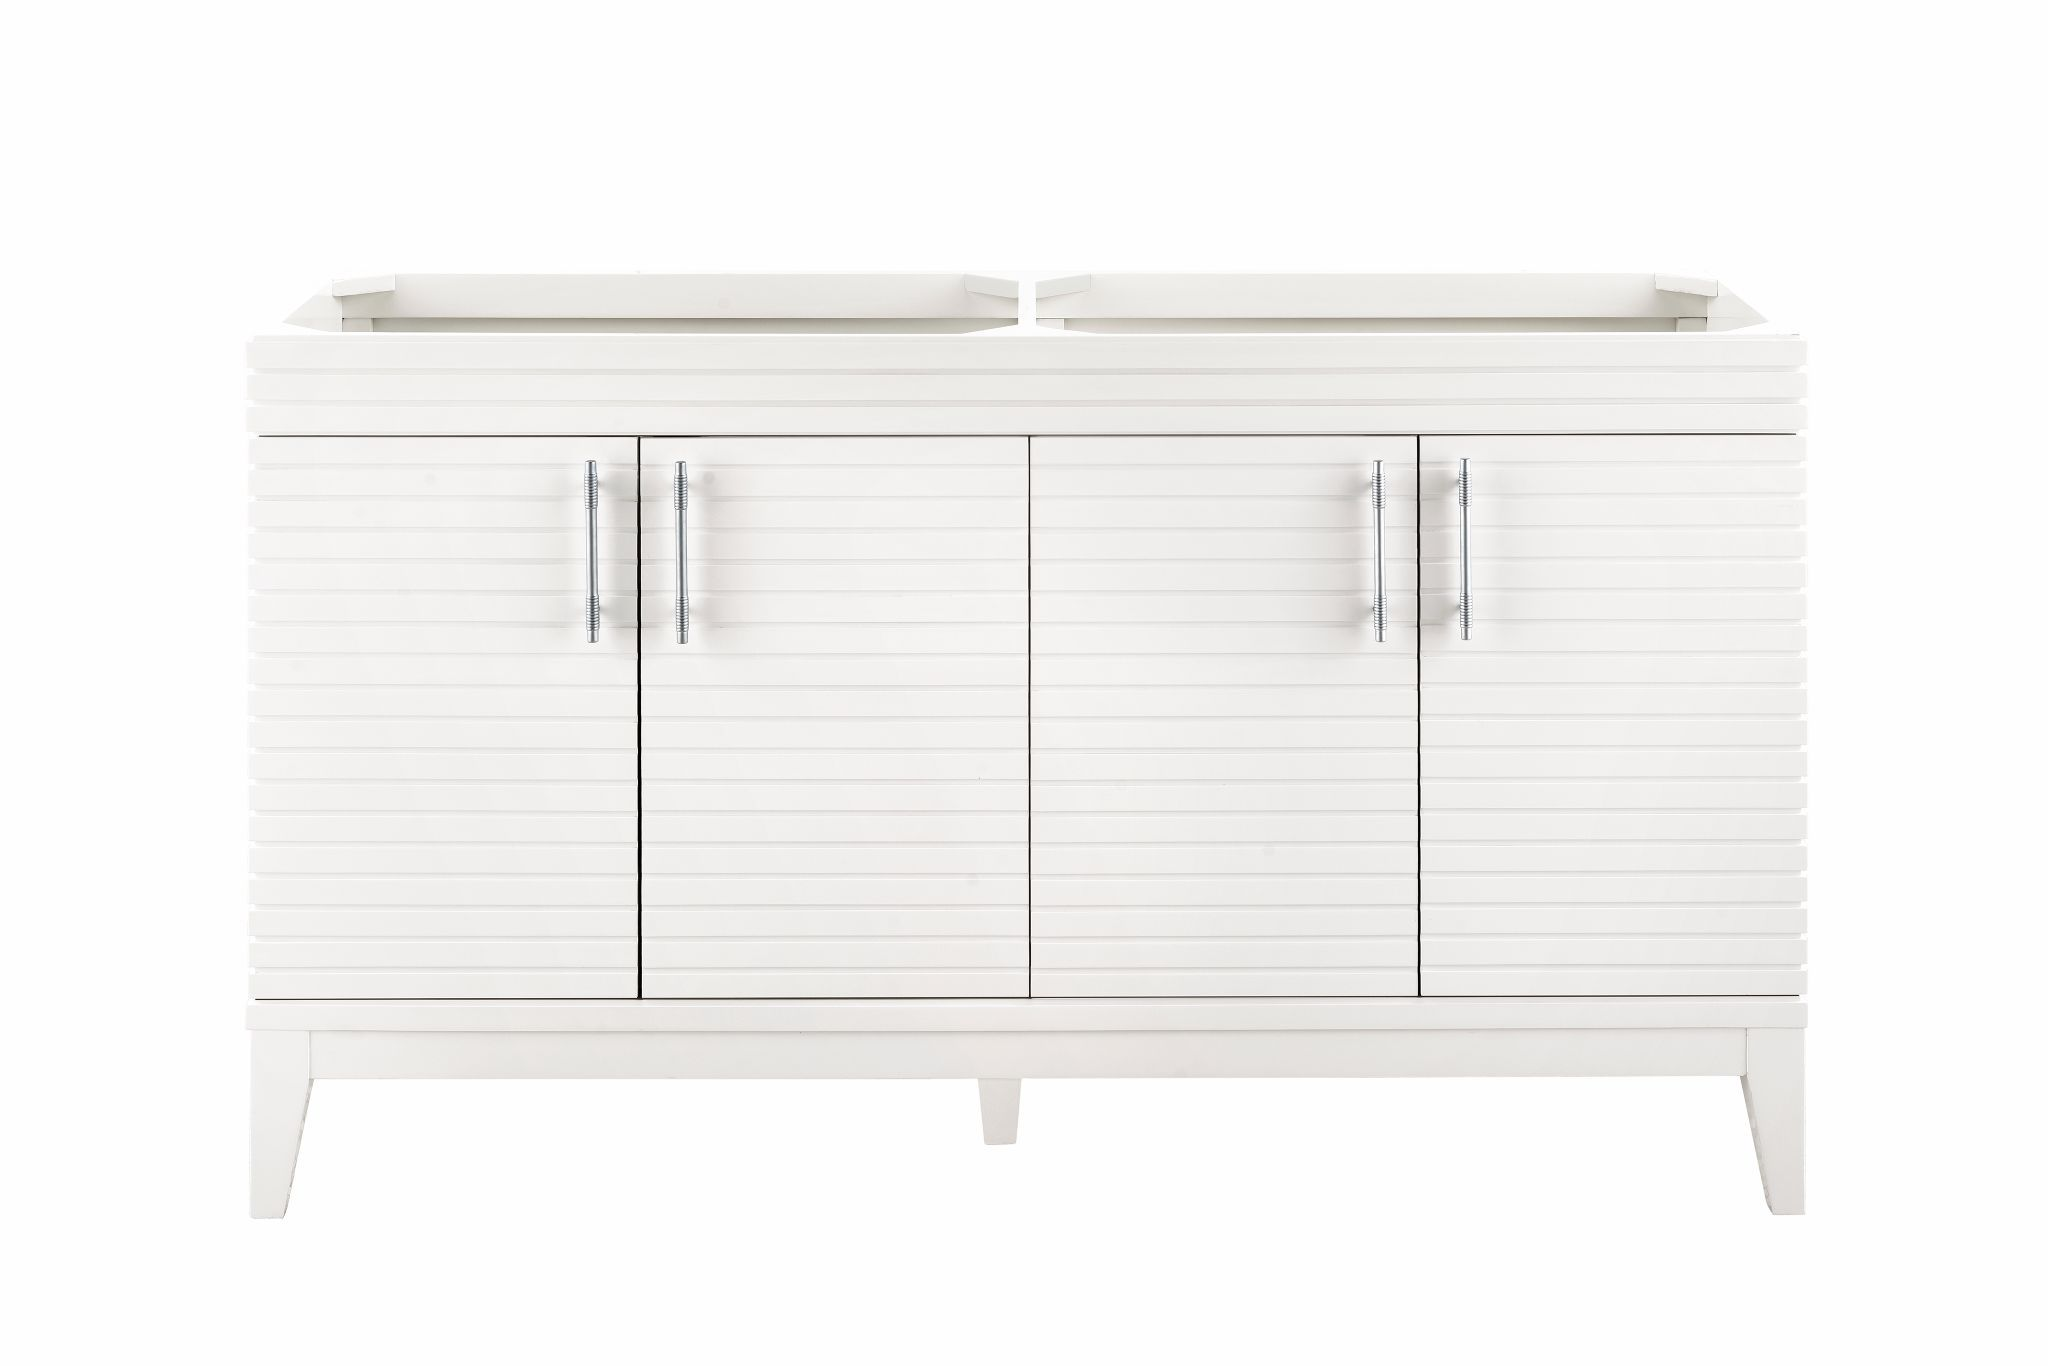 "Lineage 59"" Double Bathroom Vanity, Glossy White Double bathroom Vanity James Martin Vanities"